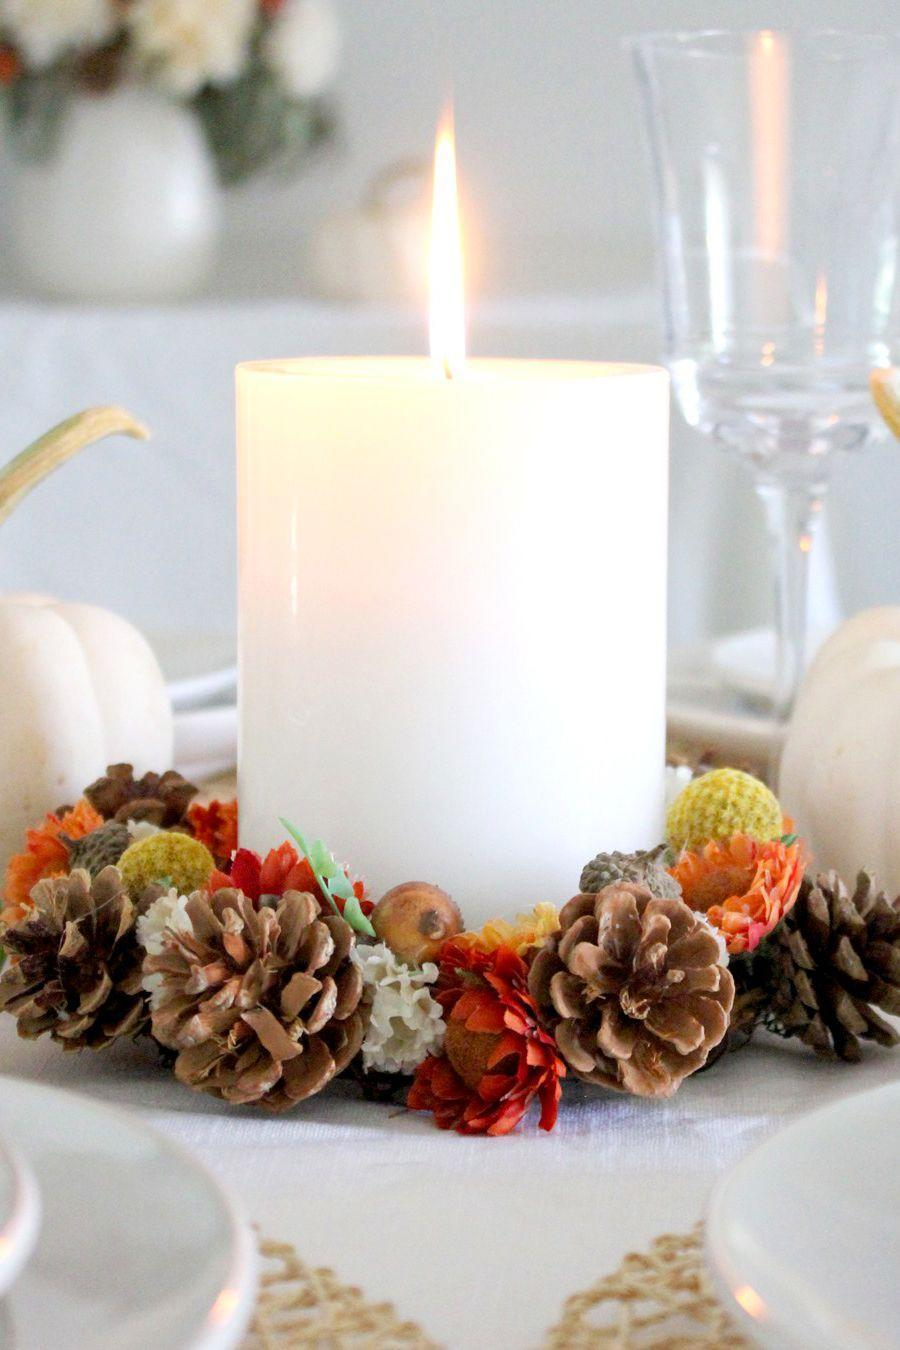 """<p>It's easy to forget to decorate areas like your coffee table, which is why we love this miniature wreath. You can make this craft in minutes and display with a candle just about anywhere.</p><p><strong>Get the tutorial at <a href=""""https://tonalitydesigns.com/diy-fall-candle-wreaths/"""" rel=""""nofollow noopener"""" target=""""_blank"""" data-ylk=""""slk:Tonality Designs"""" class=""""link rapid-noclick-resp"""">Tonality Designs</a>.</strong></p><p><strong><a class=""""link rapid-noclick-resp"""" href=""""https://www.amazon.com/Coobey-Christmas-PineCones-Ornament-Decoration/dp/B077BH8X5H/?tag=syn-yahoo-20&ascsubtag=%5Bartid%7C10050.g.1371%5Bsrc%7Cyahoo-us"""" rel=""""nofollow noopener"""" target=""""_blank"""" data-ylk=""""slk:SHOP PINECONES"""">SHOP PINECONES</a><br></strong></p>"""